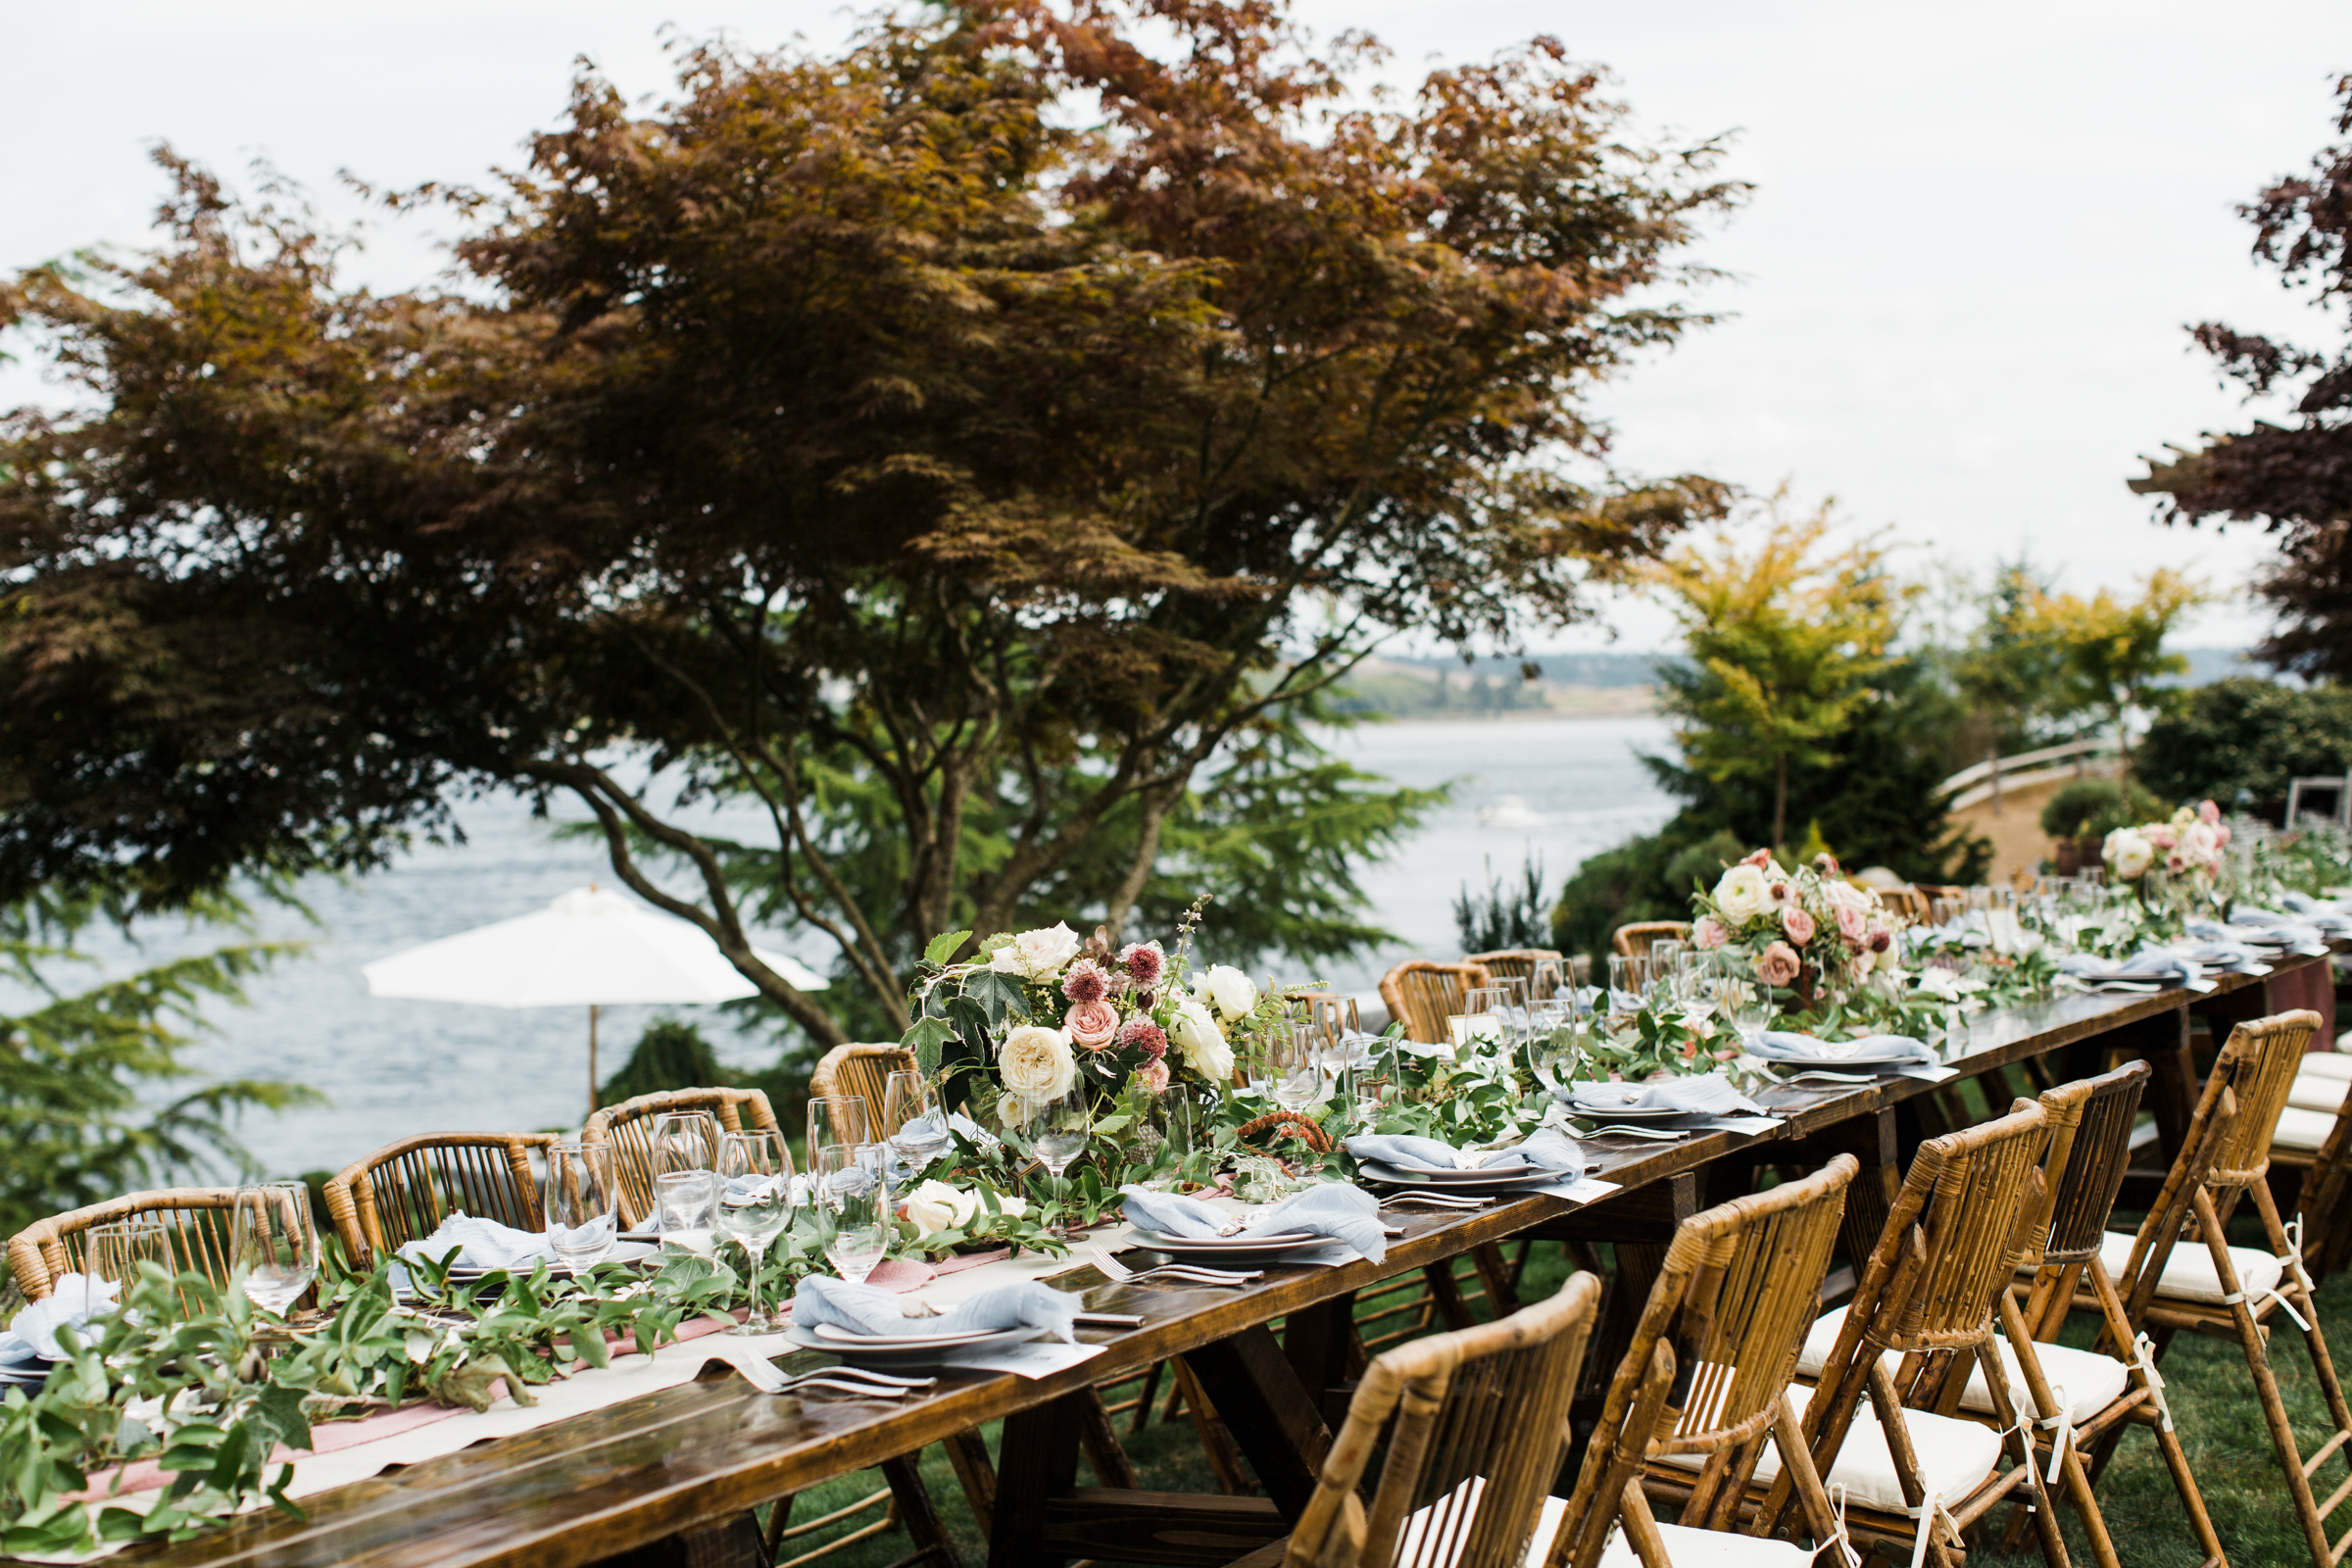 rustic-beachside-reception-table-with-bamboo-chairs-stephanie-cristalli-photography